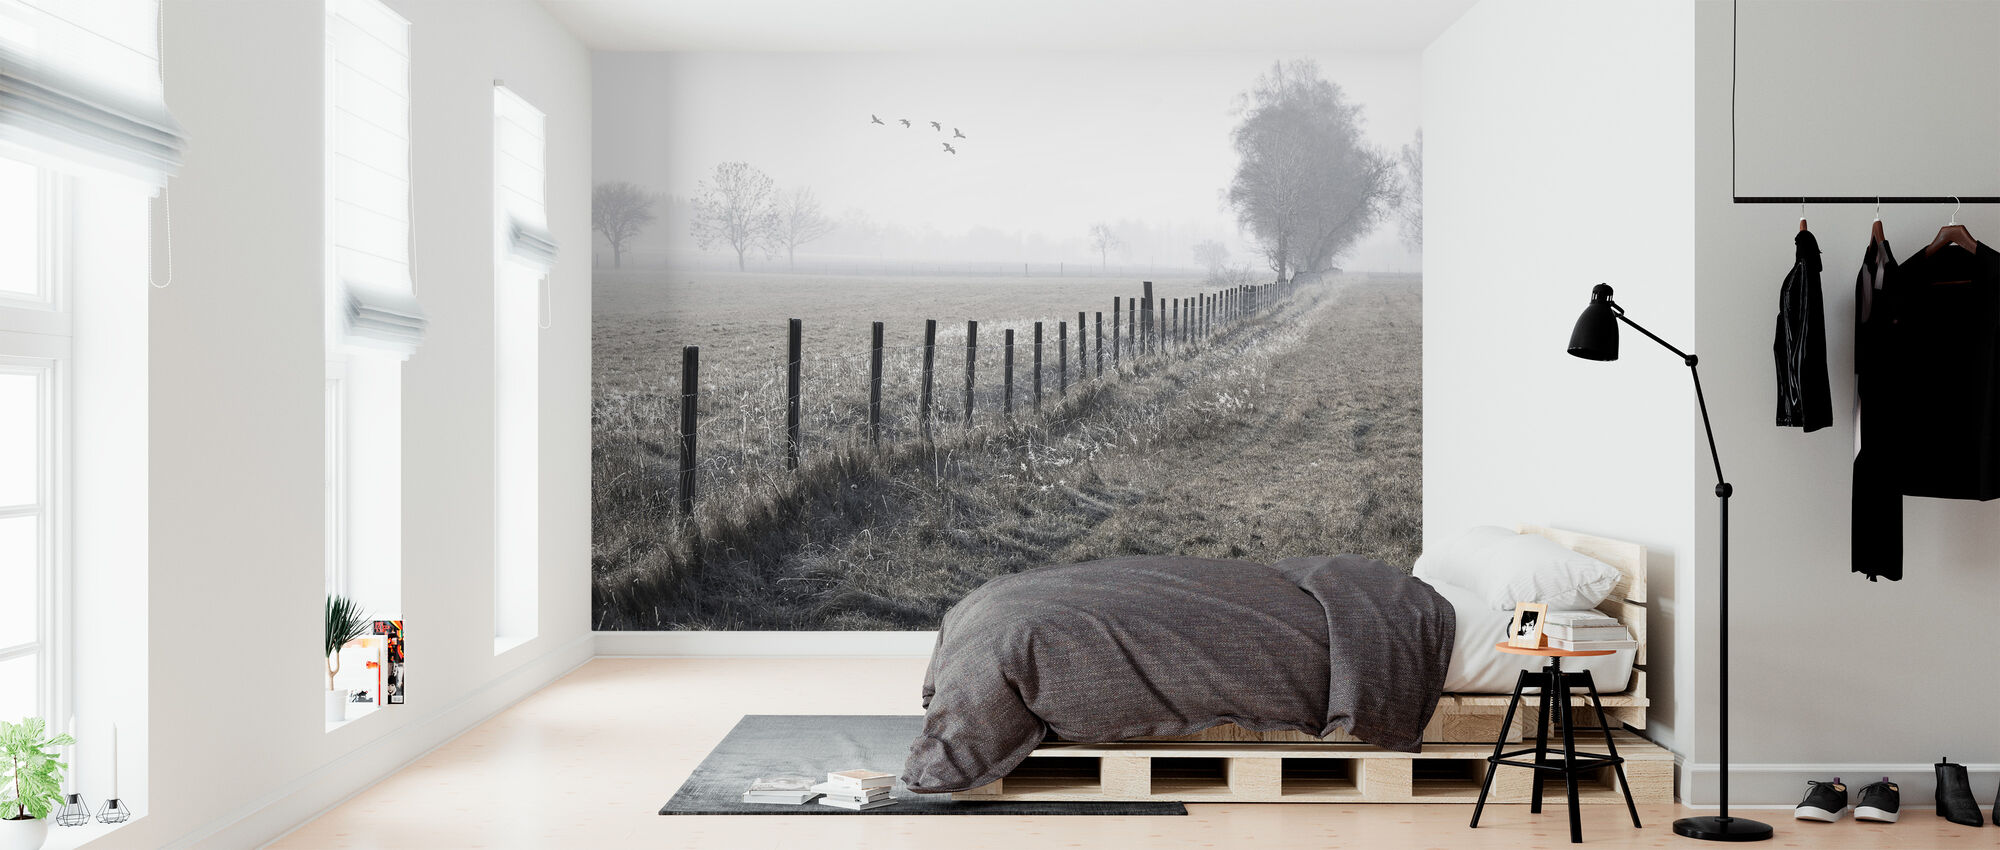 Foggy Morning - Wallpaper - Bedroom